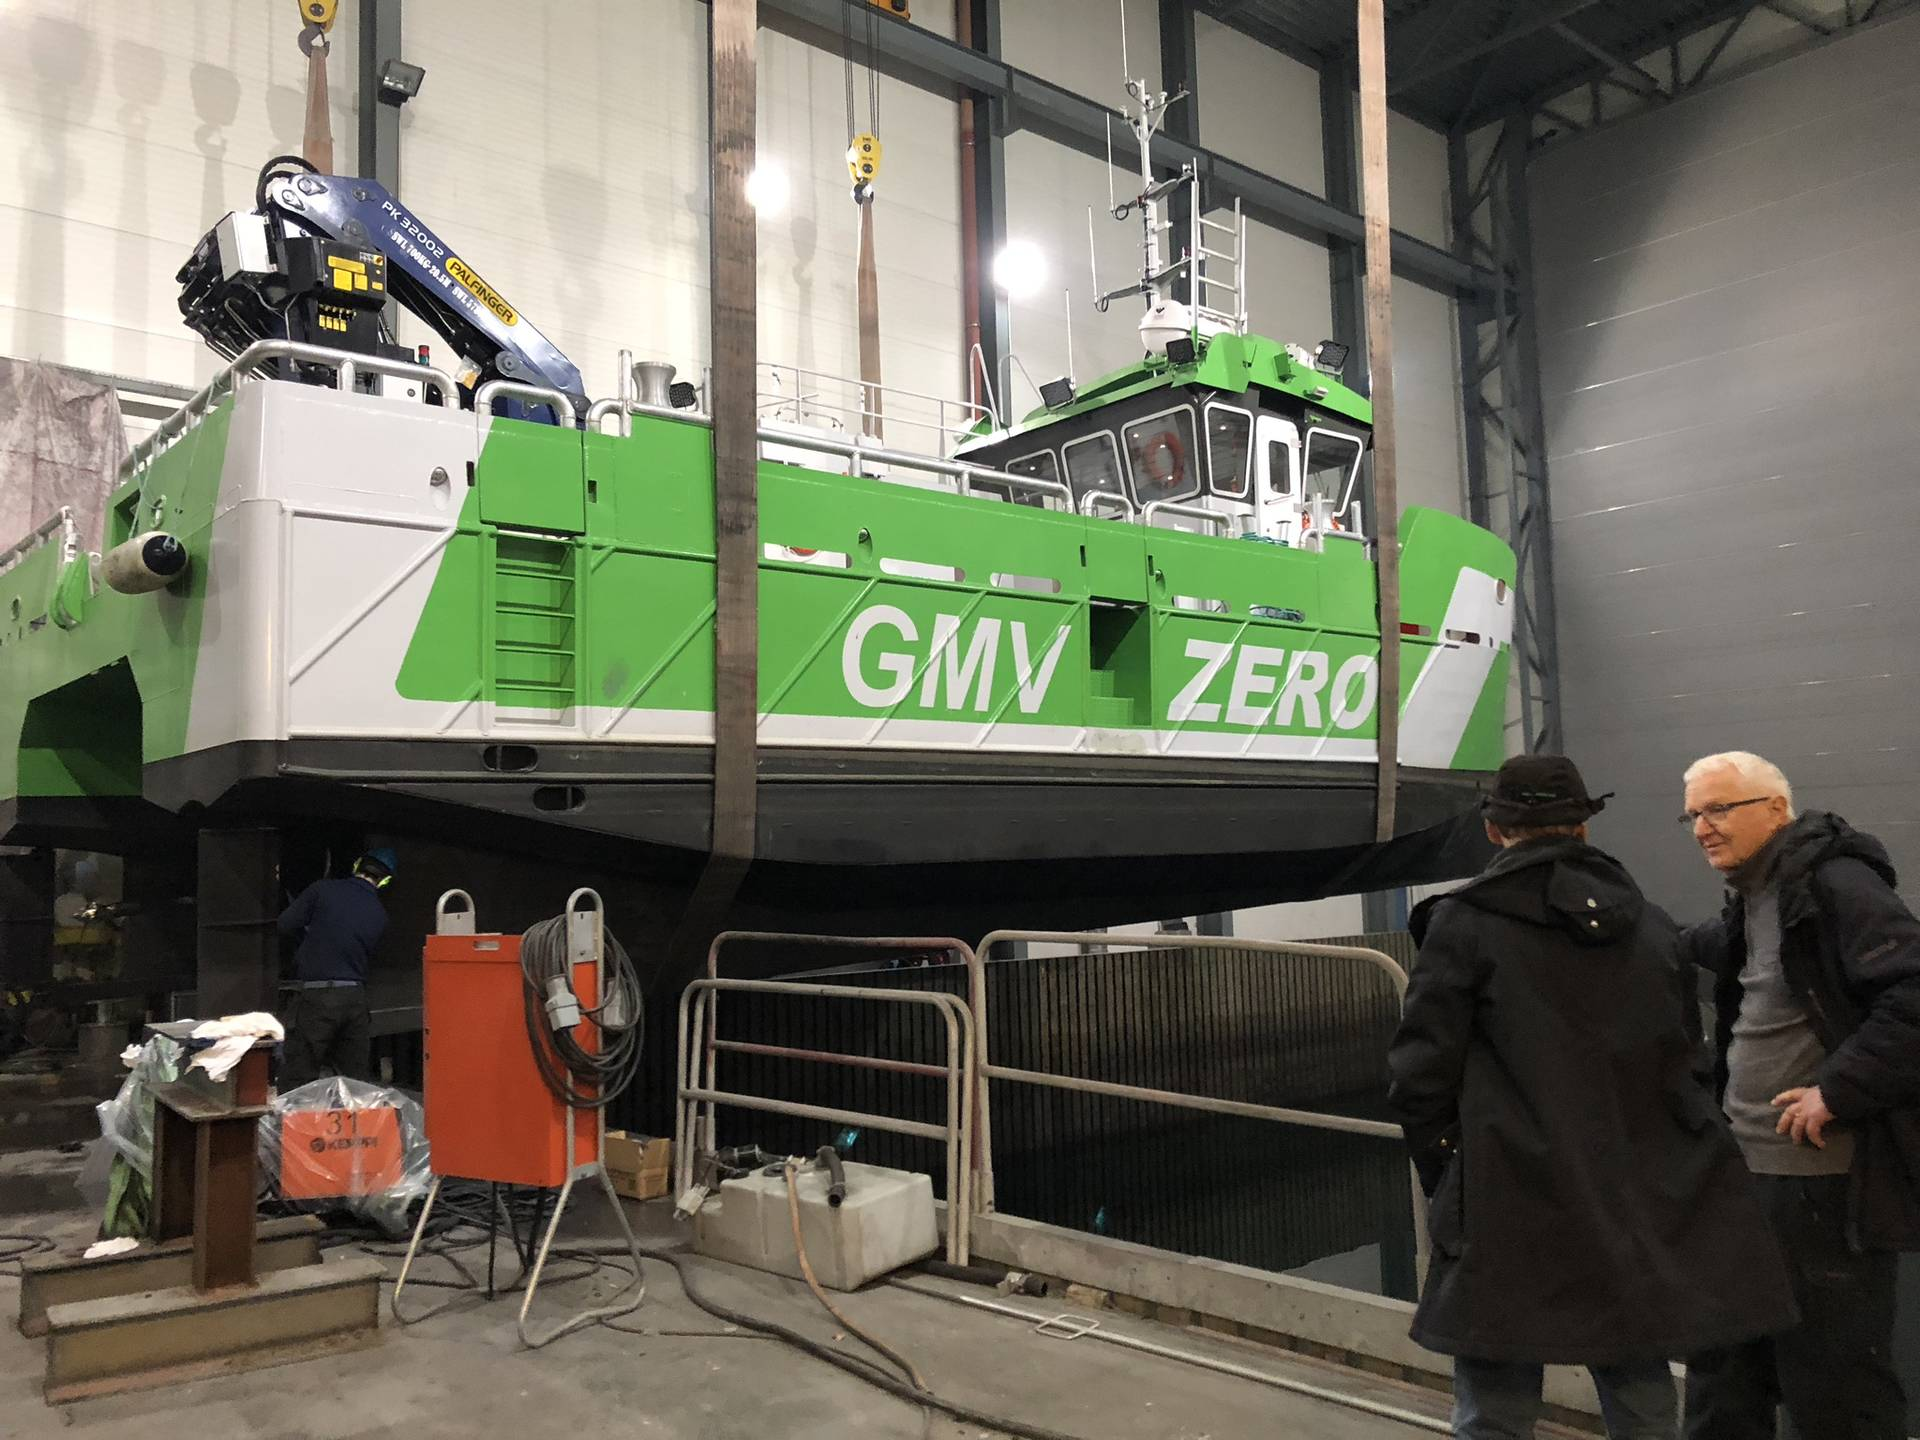 Astrid Helene is a 14-meter-long and 8-meter-wide aluminum catamaran workboat. Photo from the last part of the construction phase at Grovfjord Mekaniske Verksted.